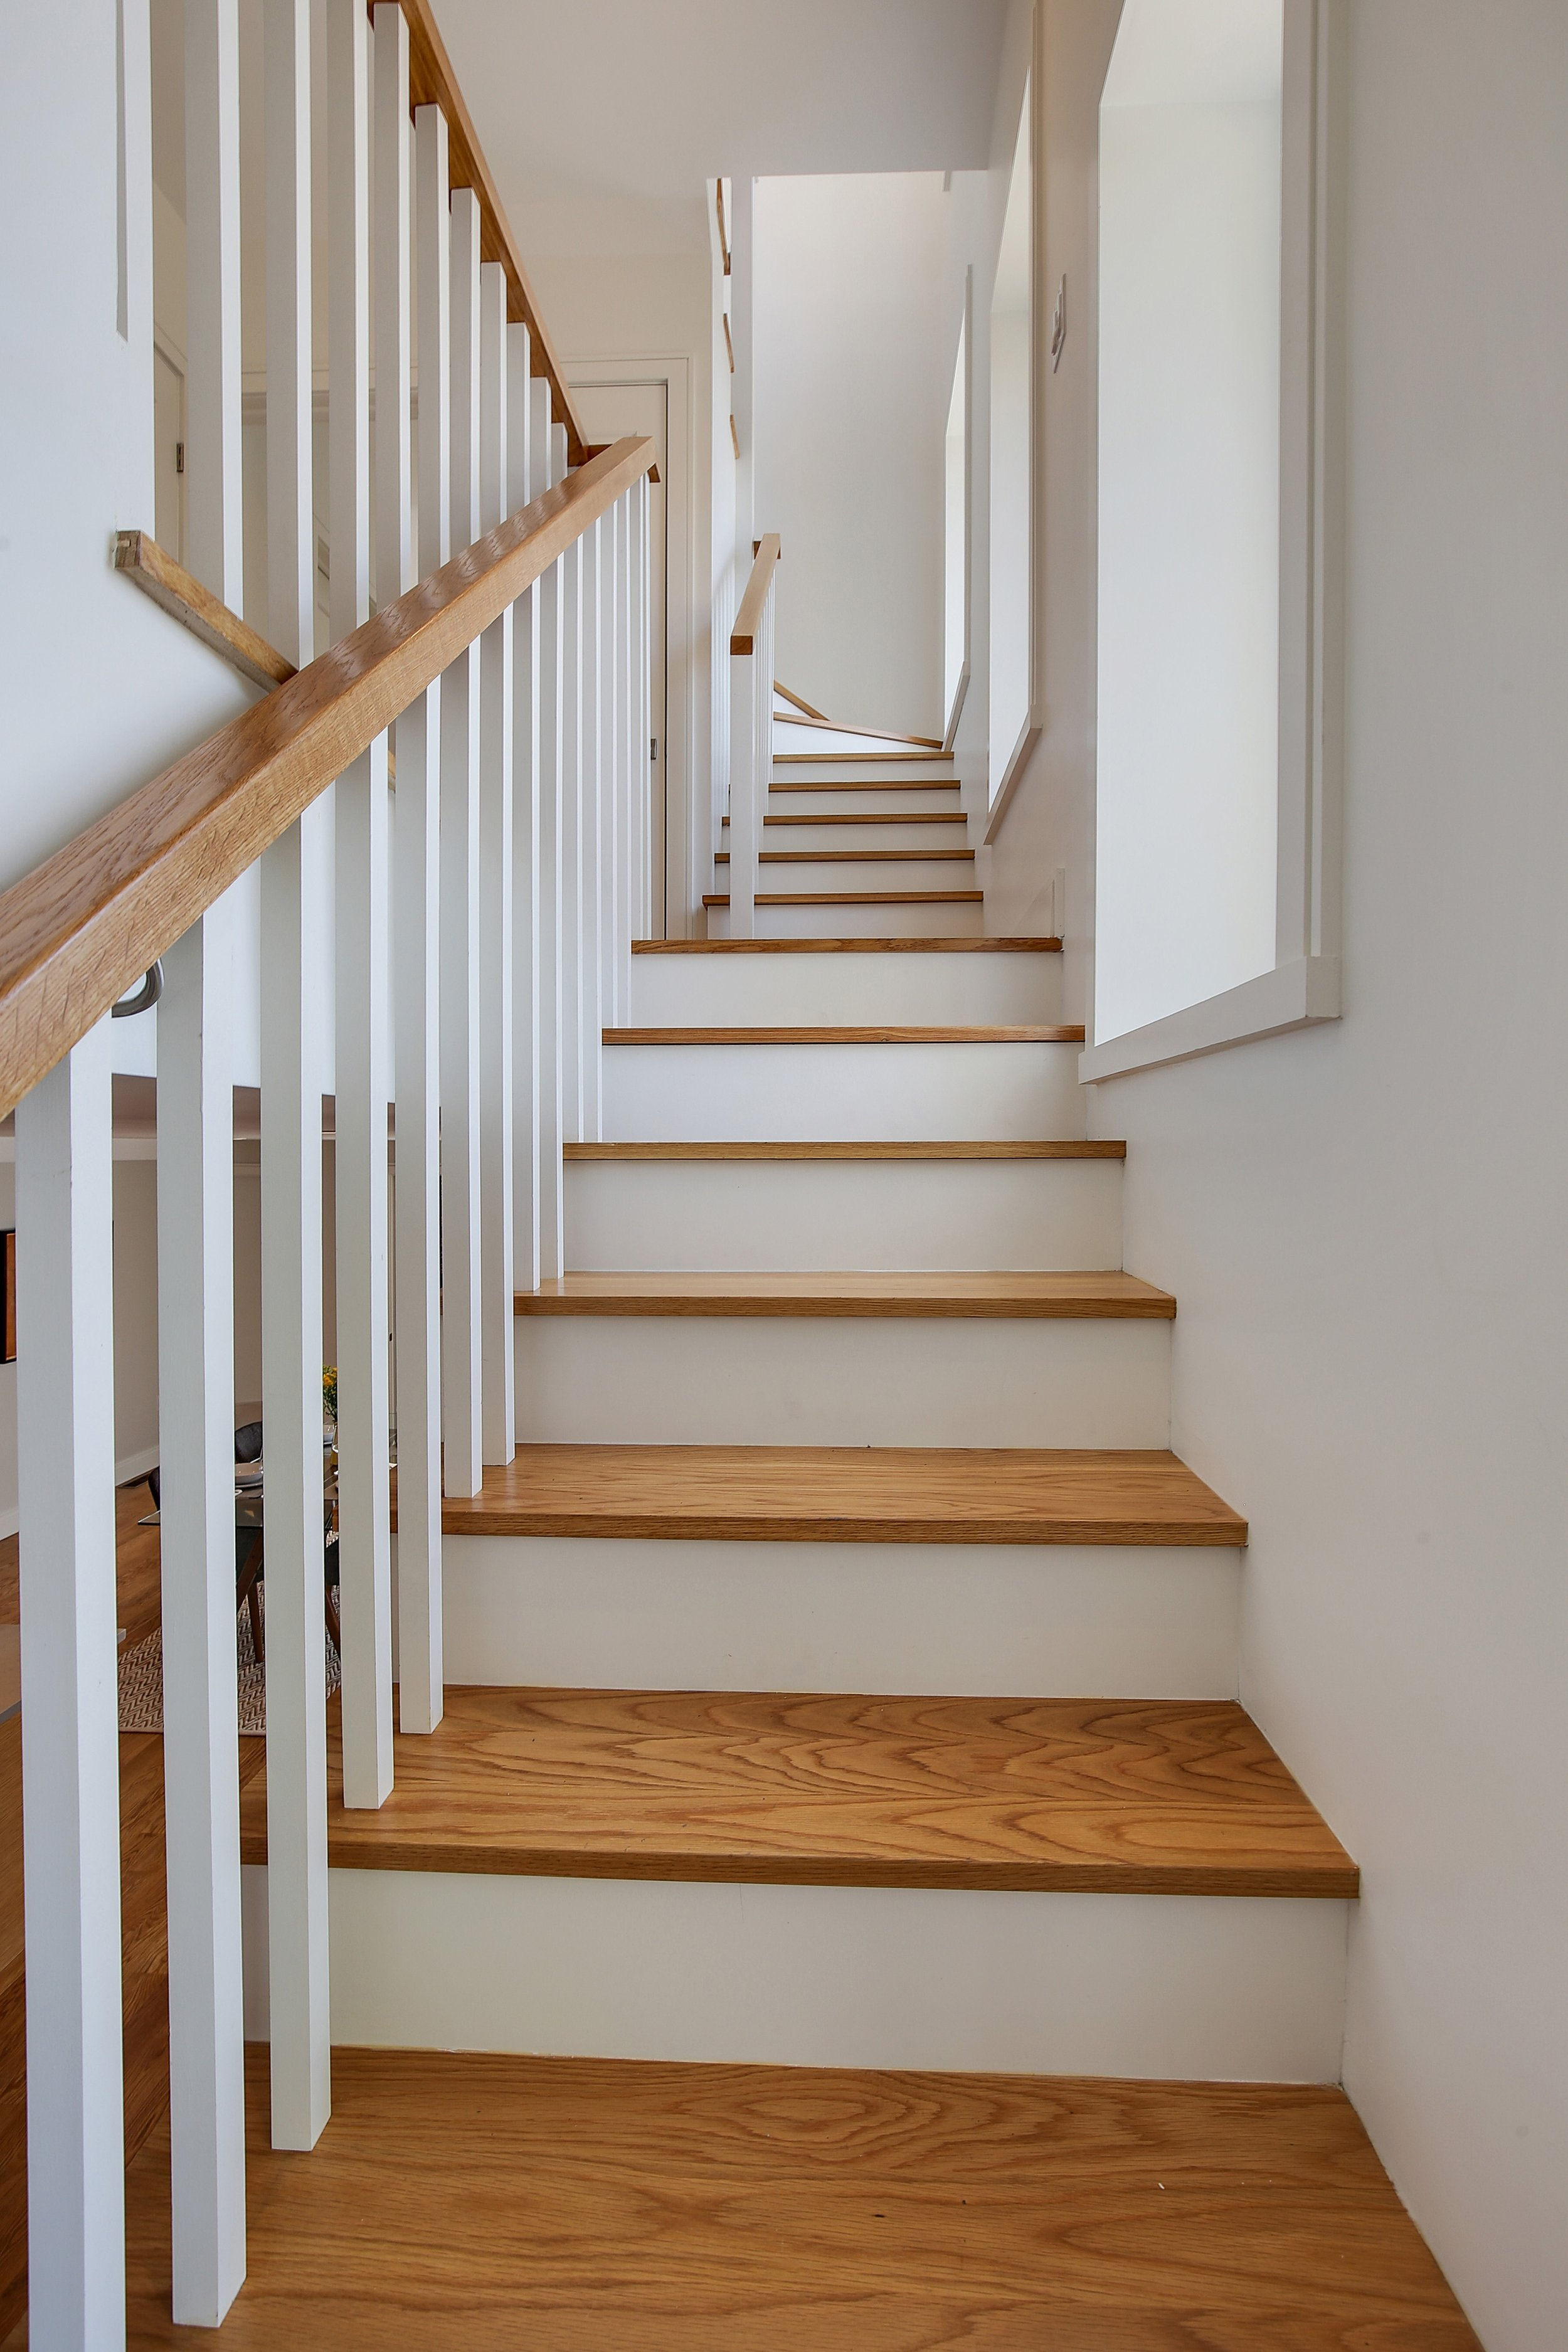 07_90LuquerStreet_null_68_Staircase_HiRes.jpg